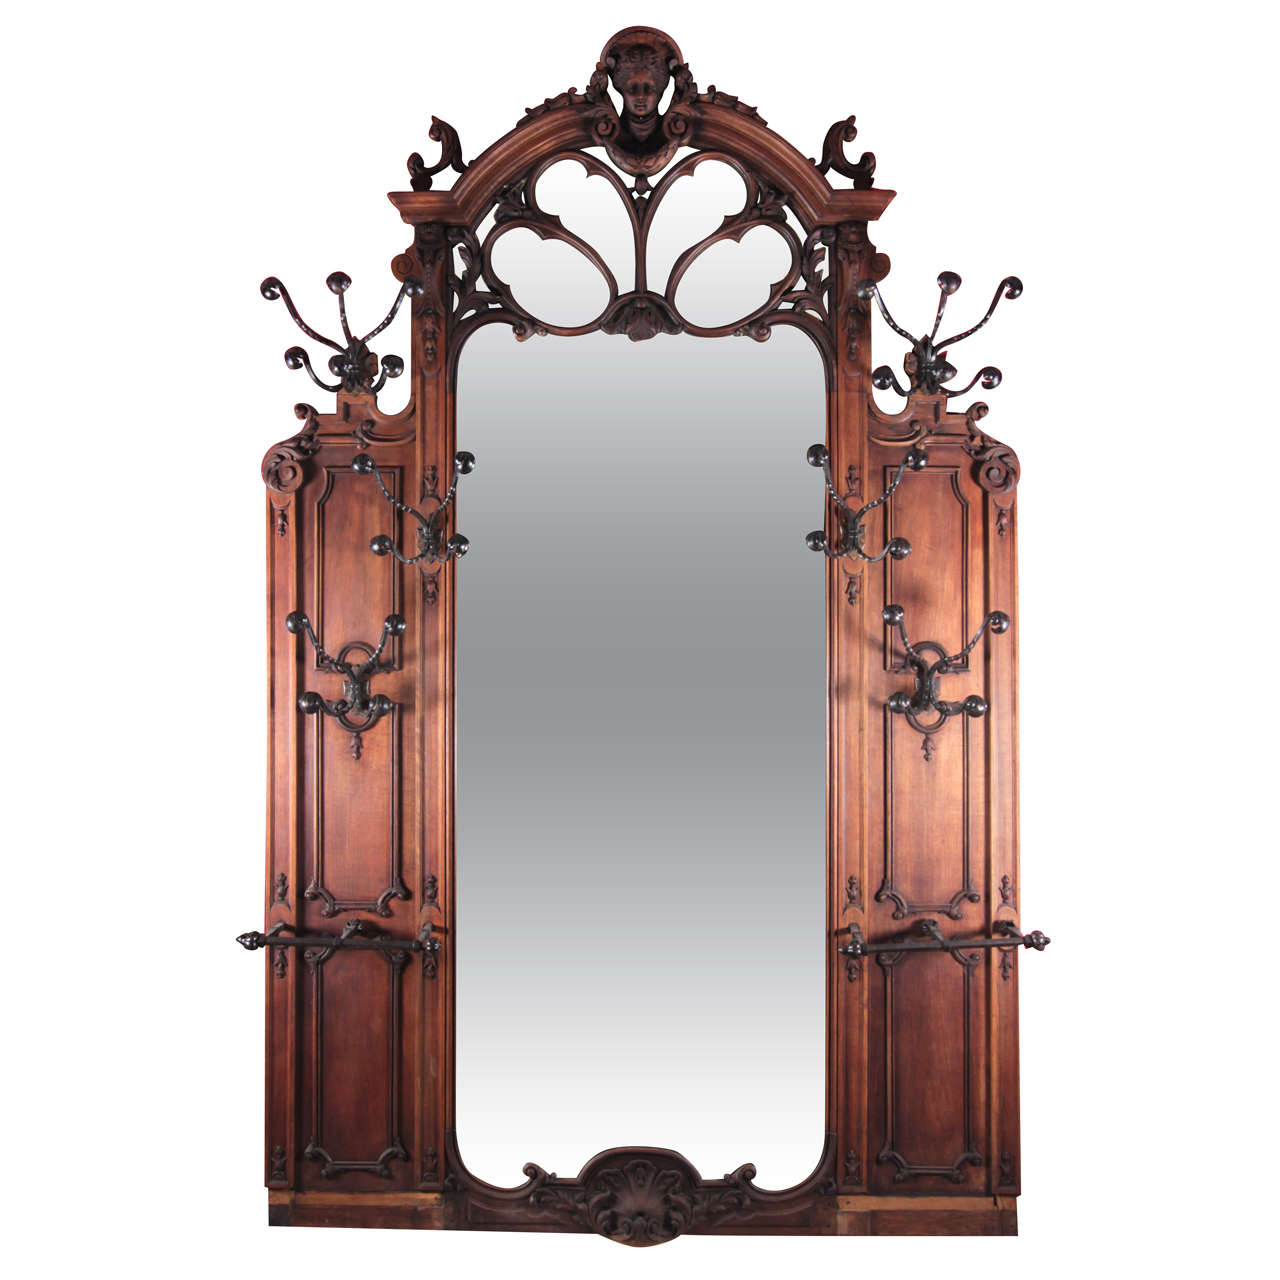 Large scale art nouveau wooden hall tree mirror at 1stdibs Large wooden mirrors for sale